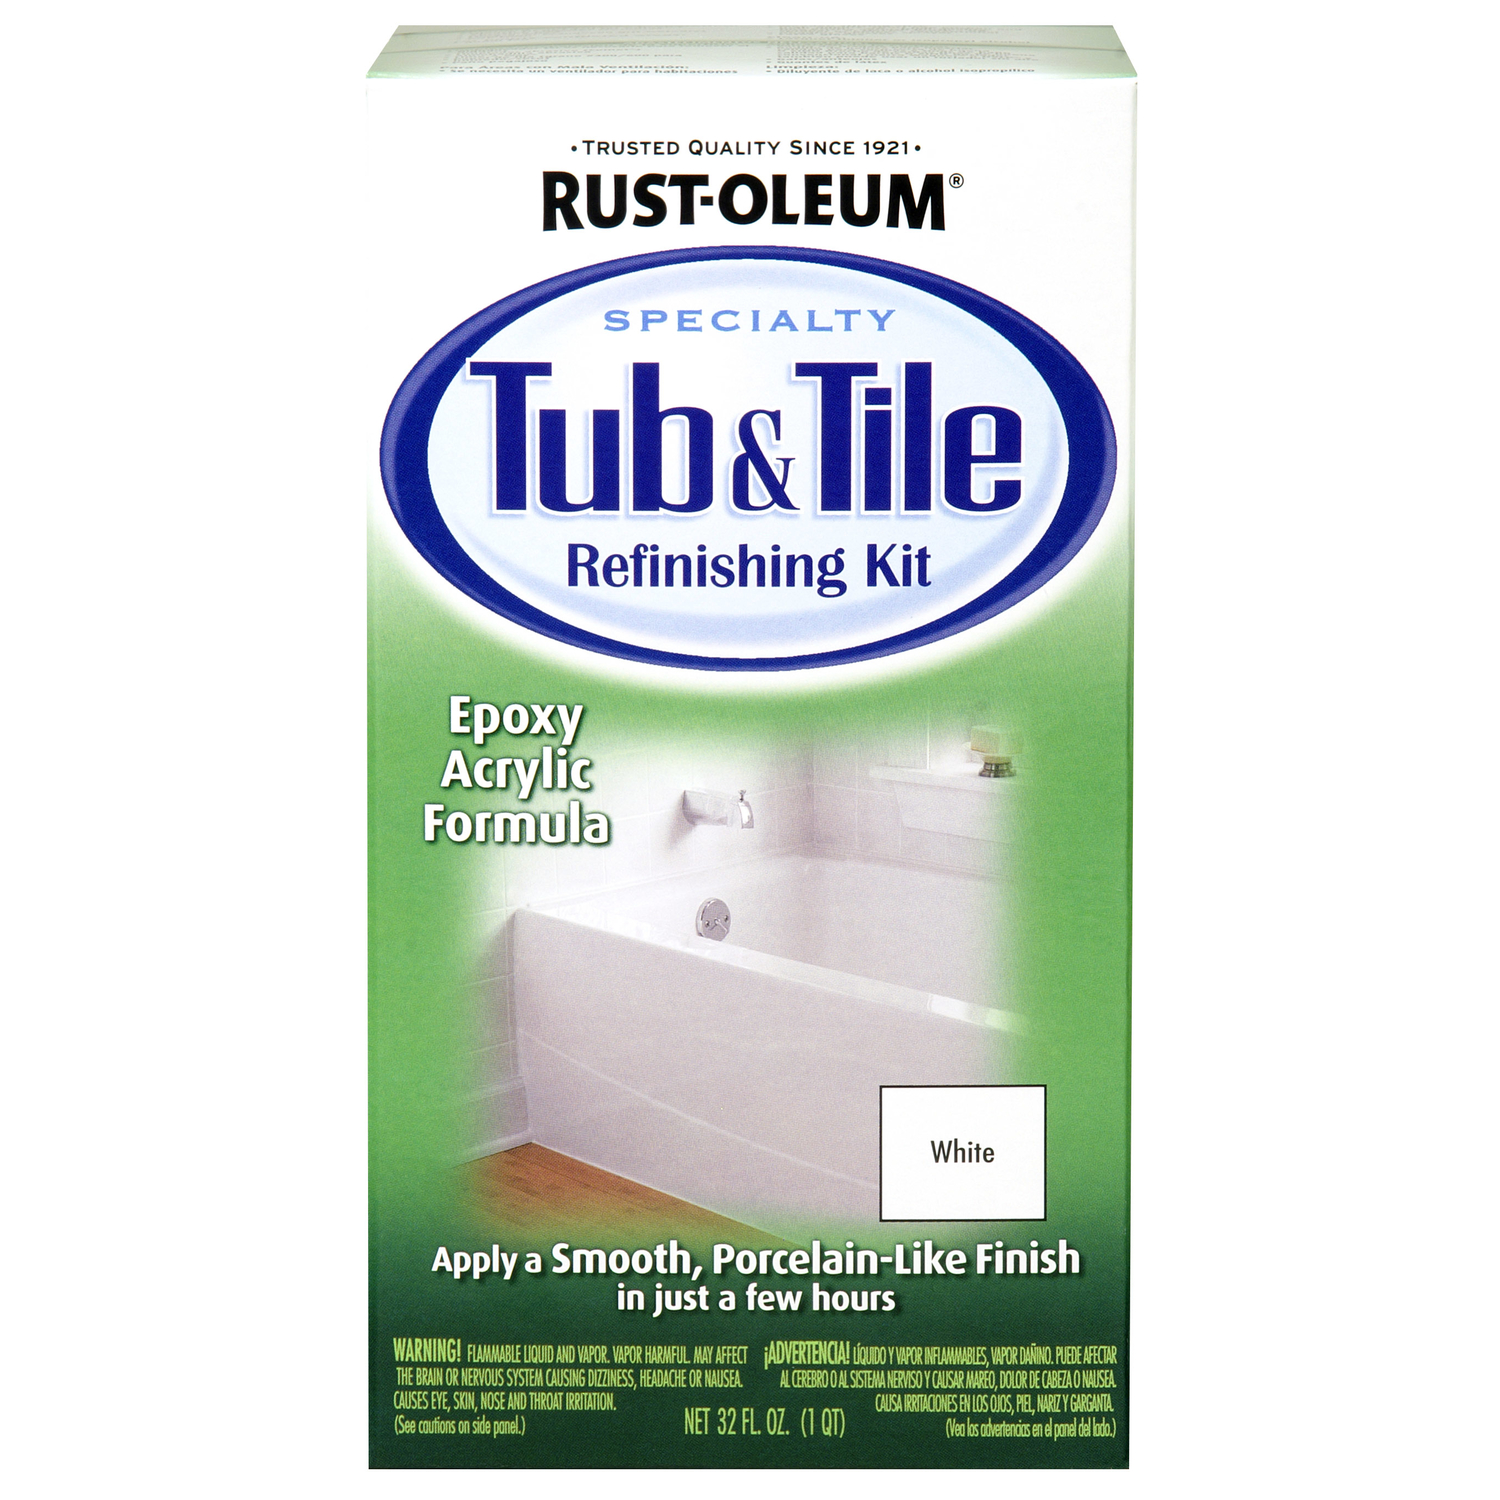 rust oleum specialty gloss white tub and tile refinishing kit interior 1 qt